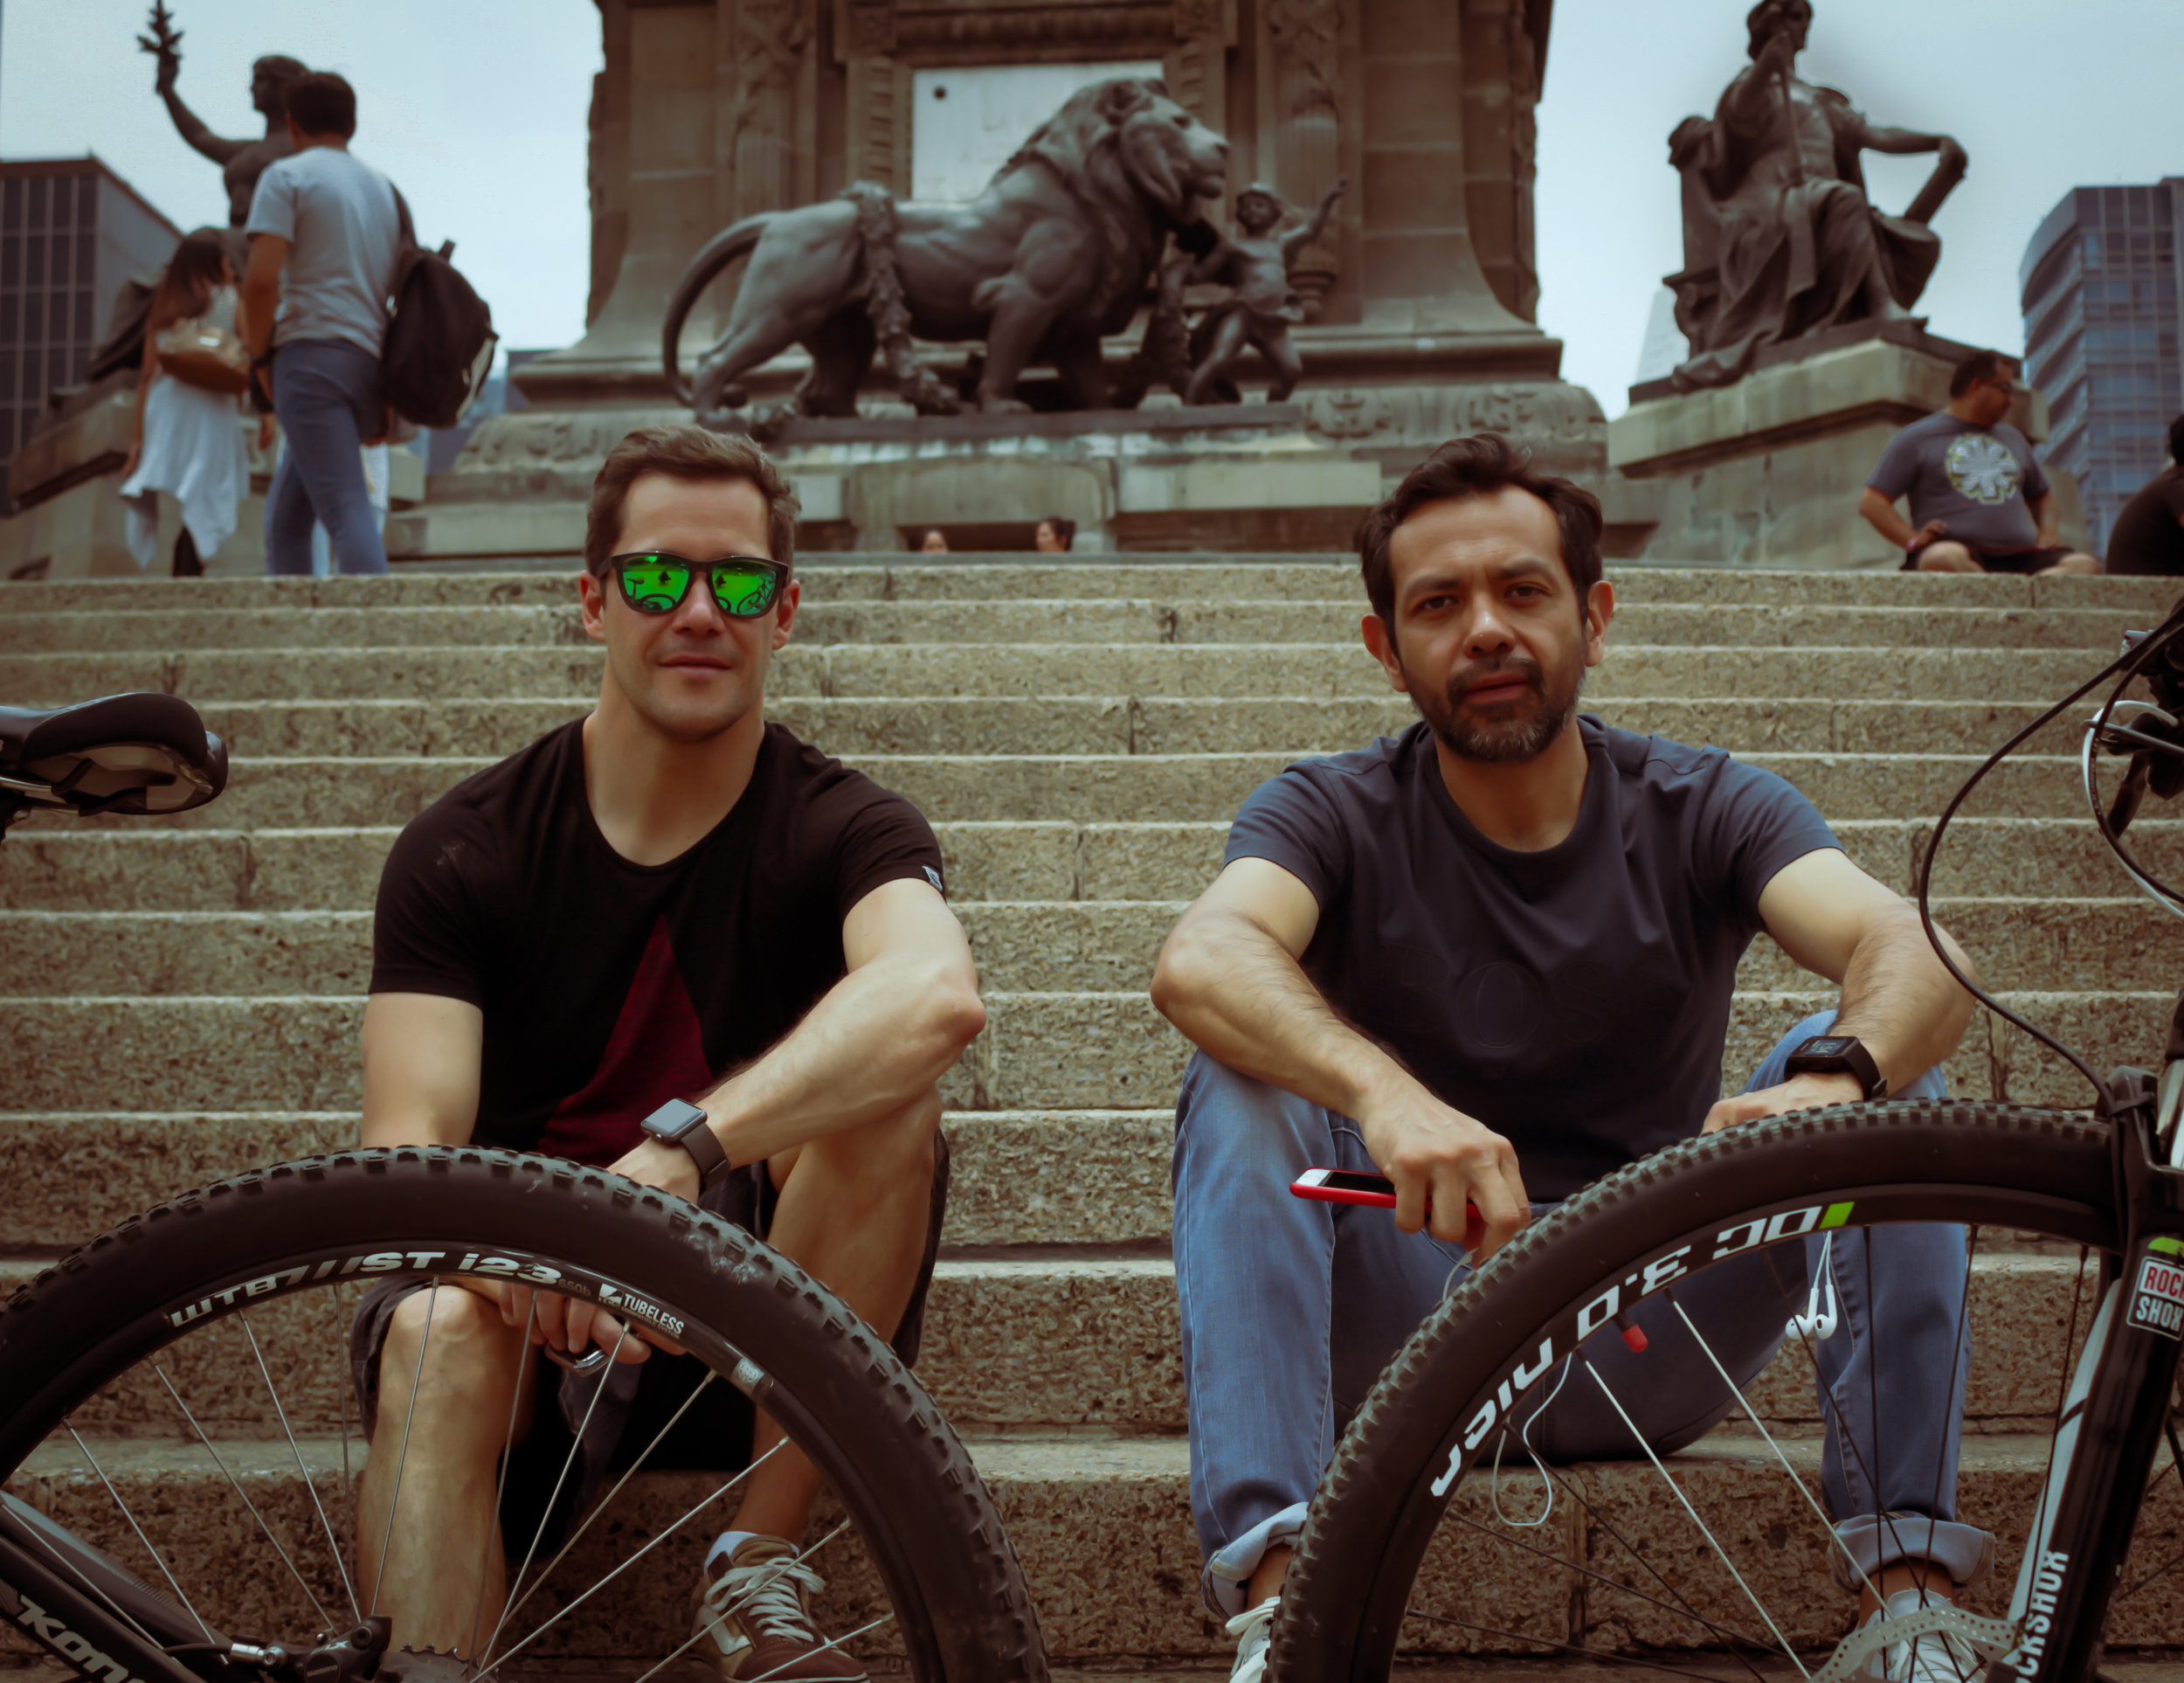 """José & Luís - I saw these two sitting on the steps leading to the the Angél de la Independencia, the most recognizable figure in the city. José has lived in Mexico City for nine years, but is from Spain (easily deduced by his still thick Spanish accent). Luís is a city native. They assure me I've come to ciclovía on the right day, as the last Sunday of the month is the most attended with 52km streets closed to cars (according to José).I ask how often they use their bikes.:José: """"(In Spanish) Minimum, at least once a week. I like riding for sport, exercise. It's a good way to hang out with friends.""""Luís agrees: """"(In Spanish) Yea I just use it for fun"""".José continues: """"It's good to see the city (ciclovía) without traffic, only for bikers. Its safer."""